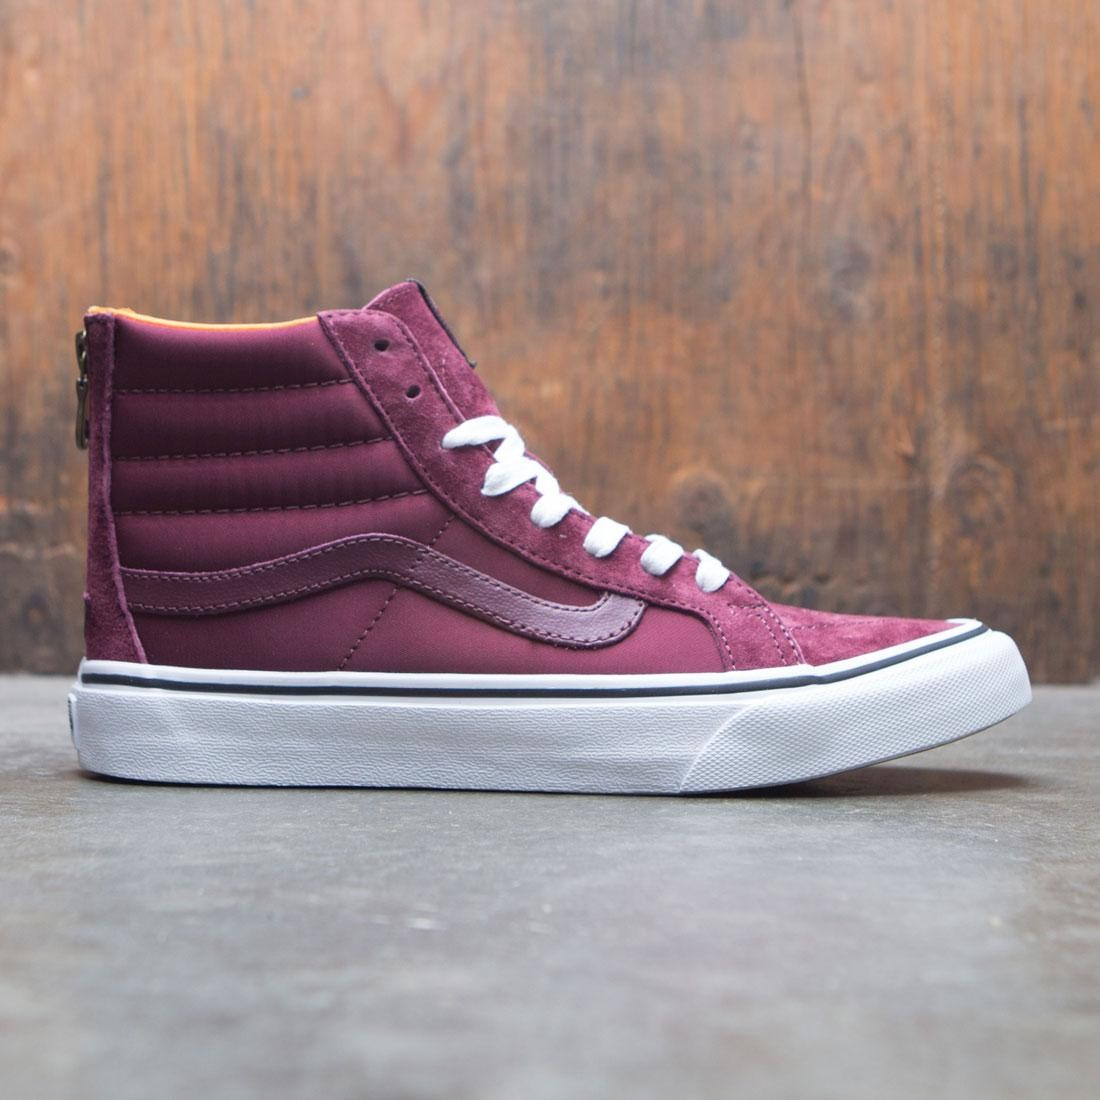 eeb1341de9 Vans Men SK8-Hi Slim Zip - Boom Boom burgundy port royale